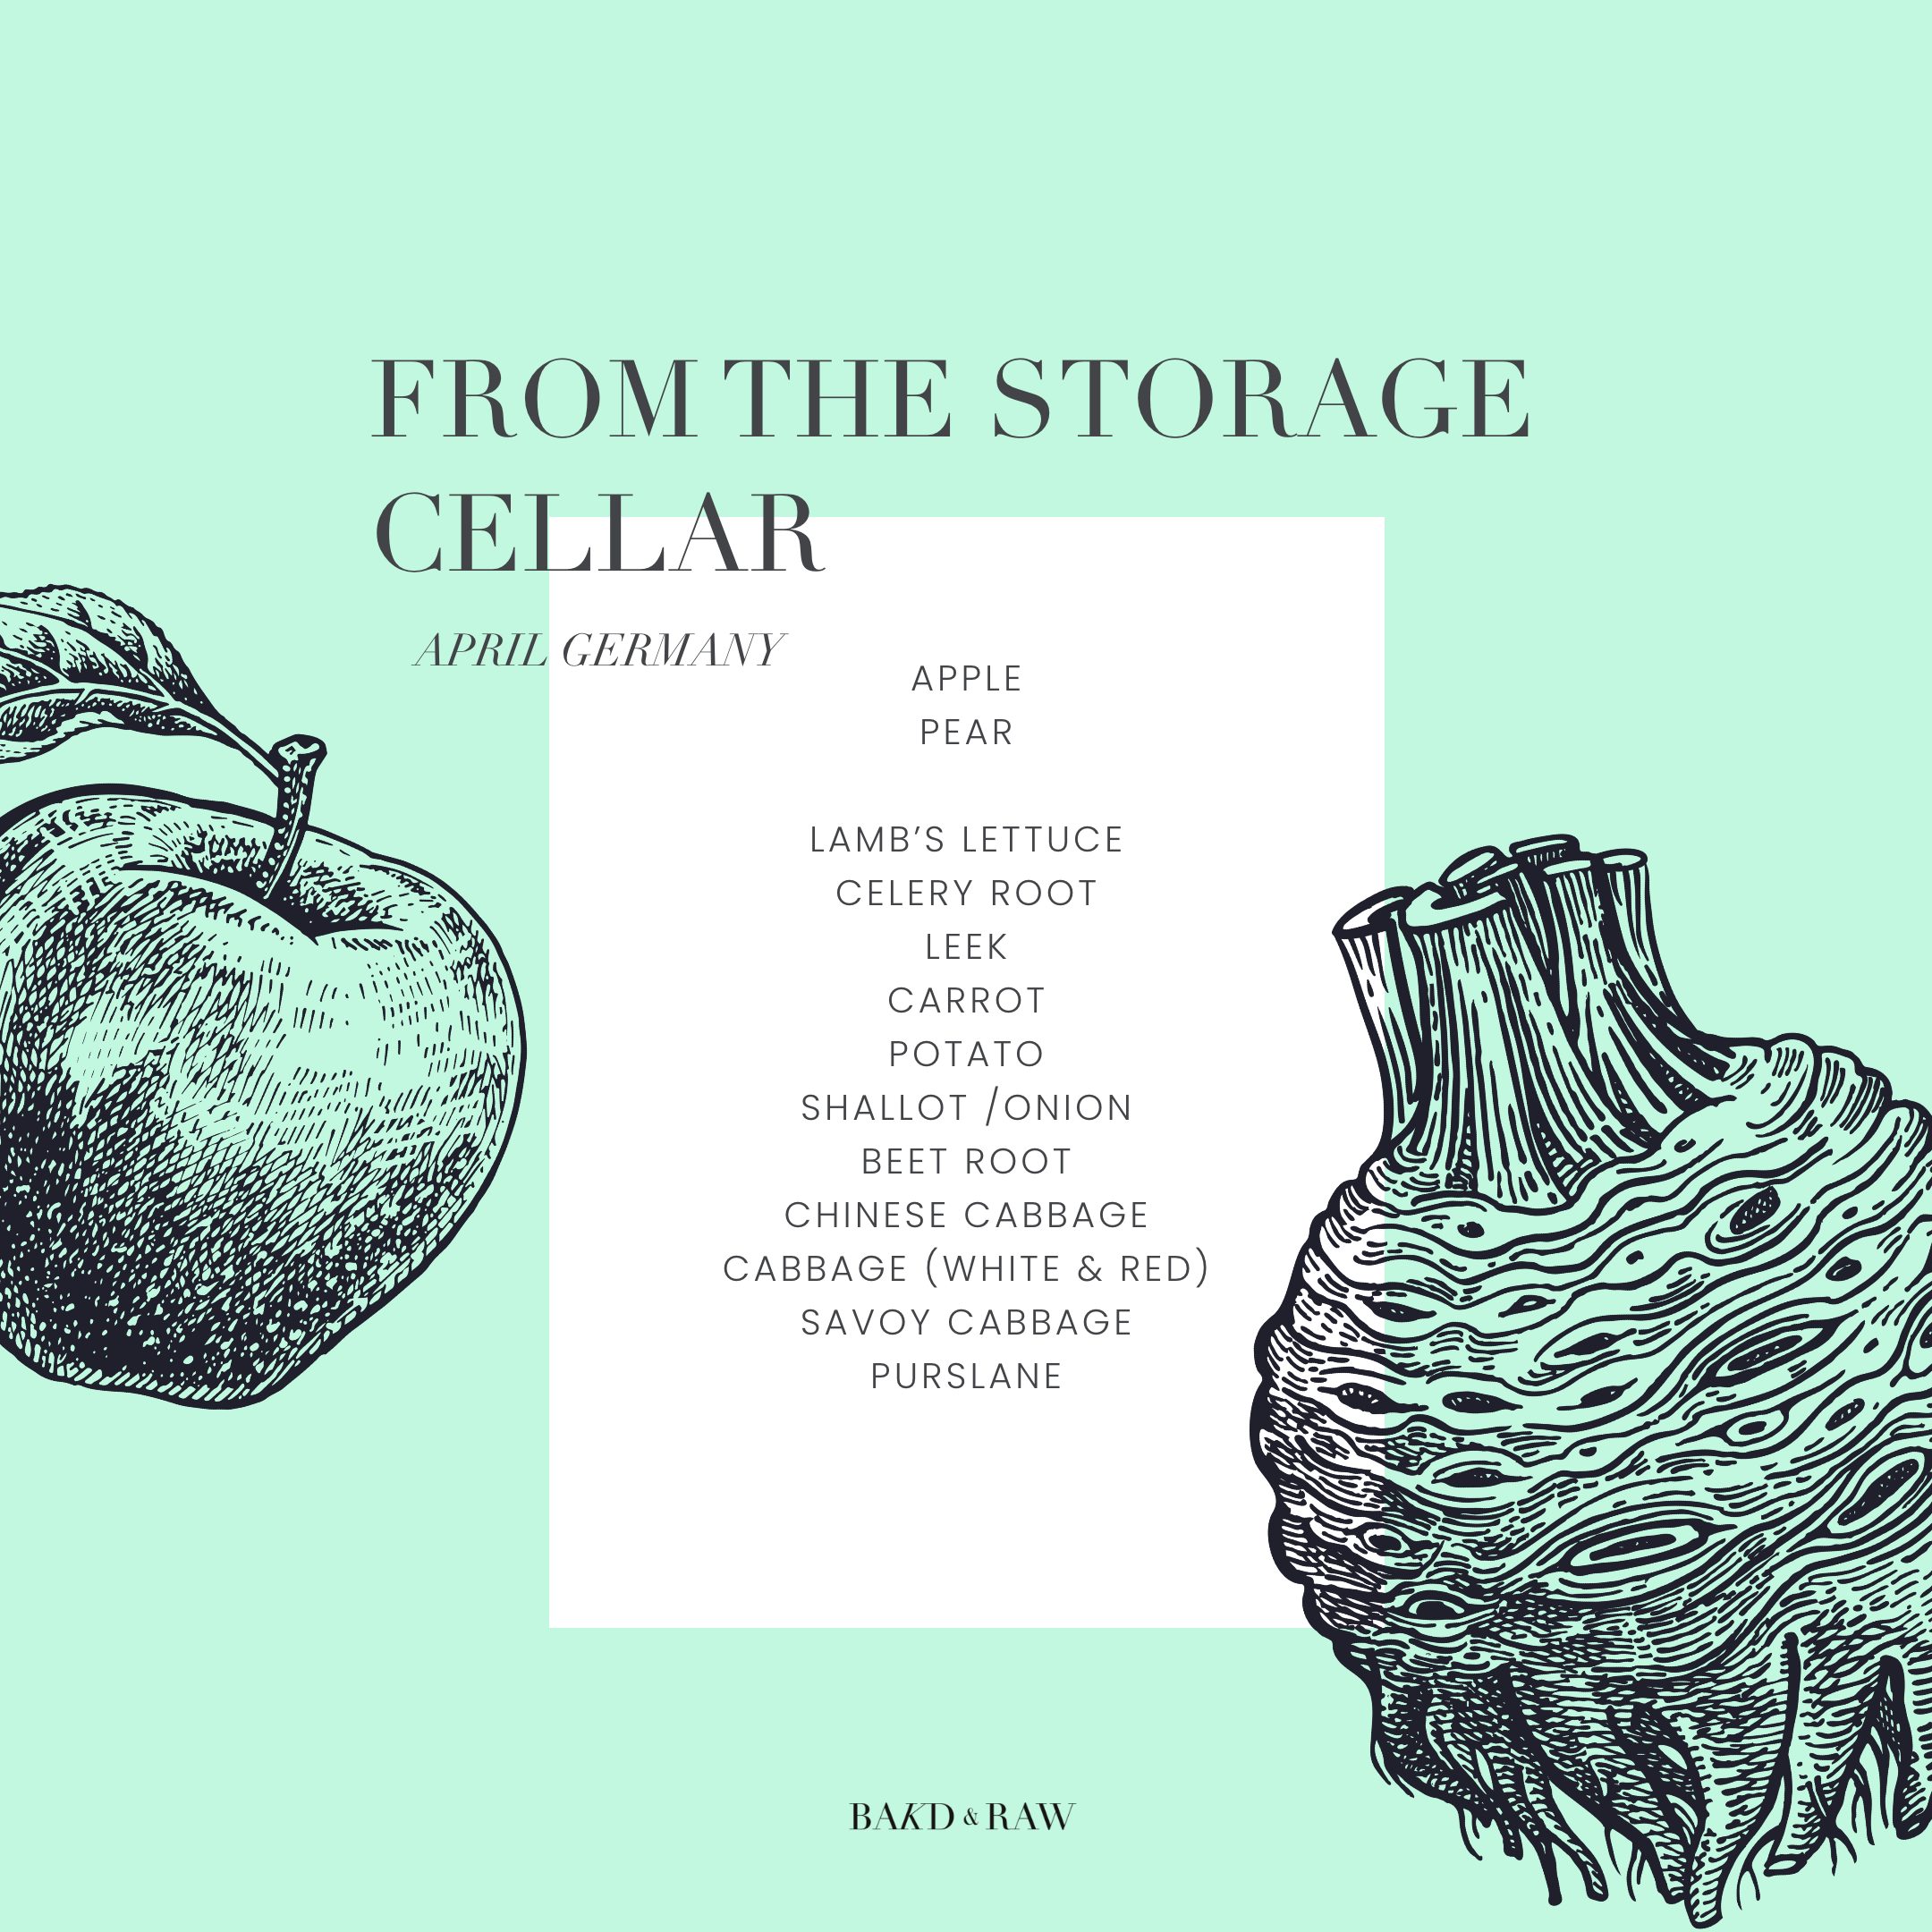 In Season in April, From the storage cellar by Bakd&Raw